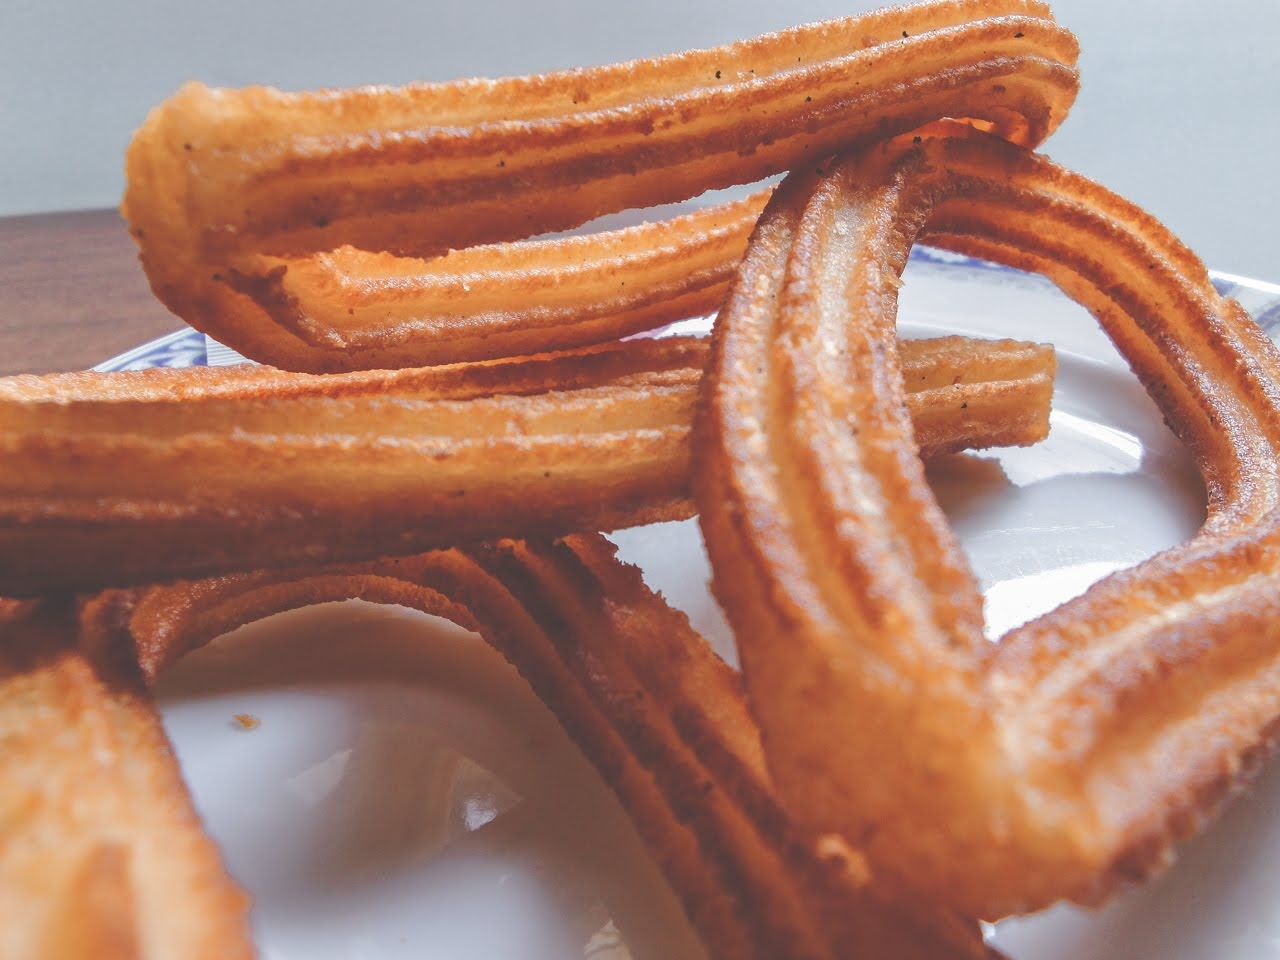 A closeup of the warm churros